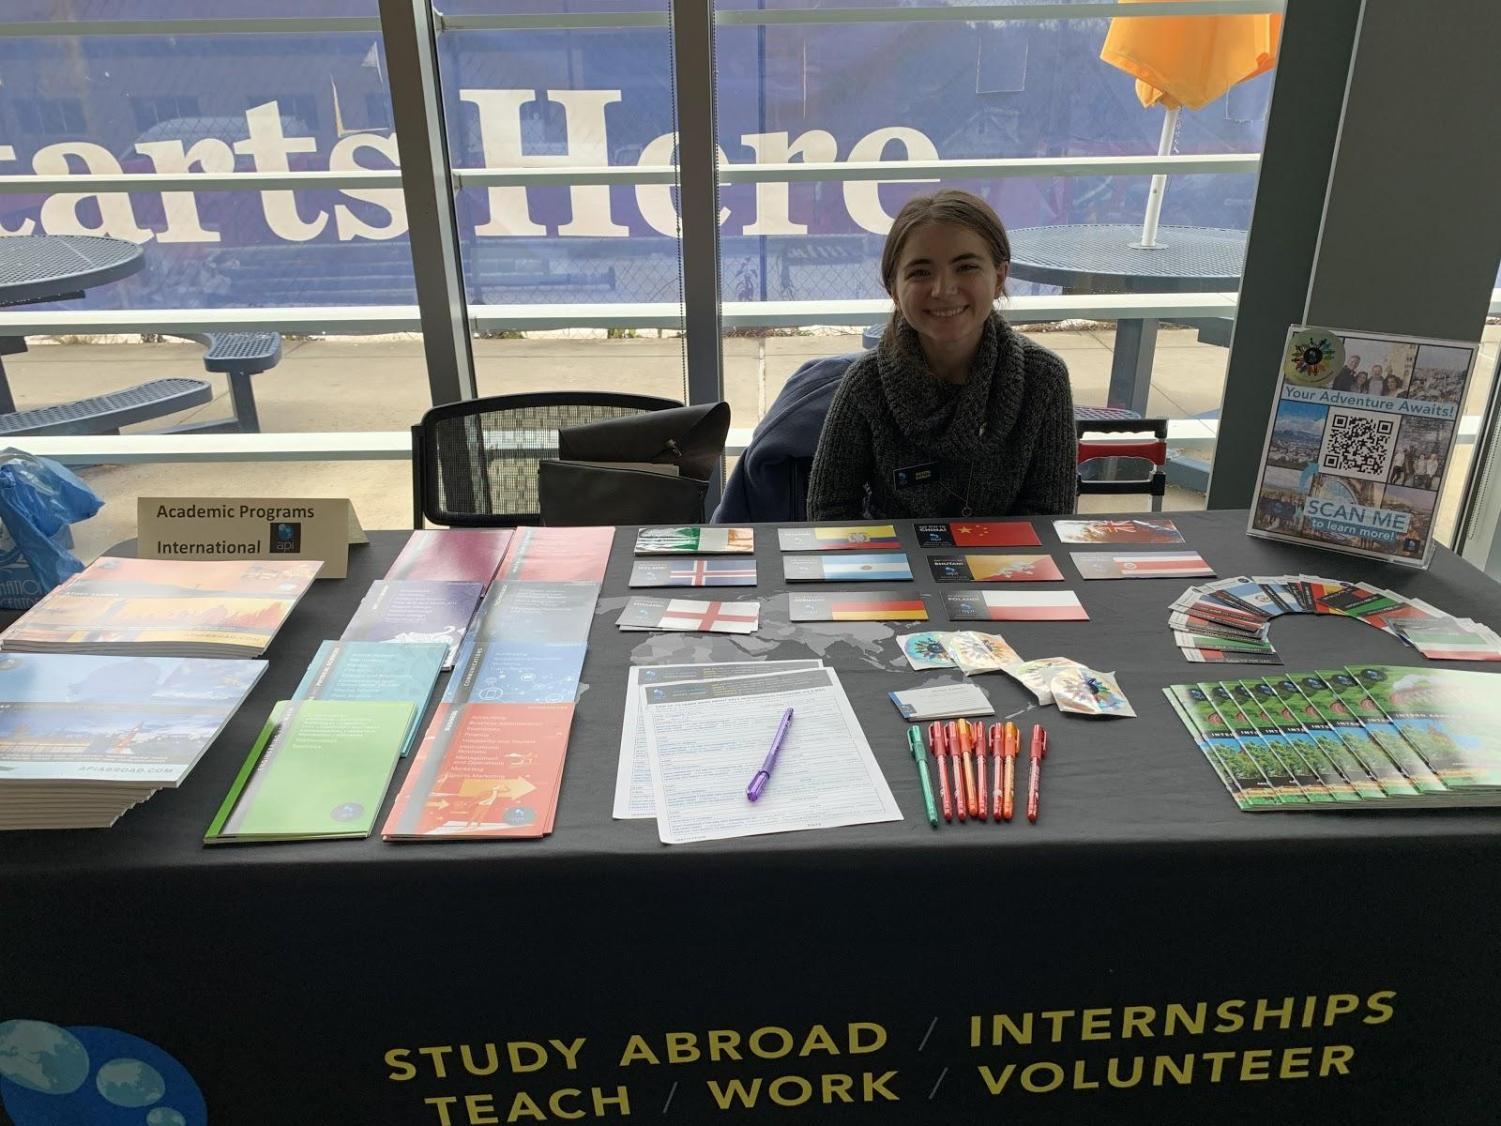 API Table at the Study Abroad Information Fair